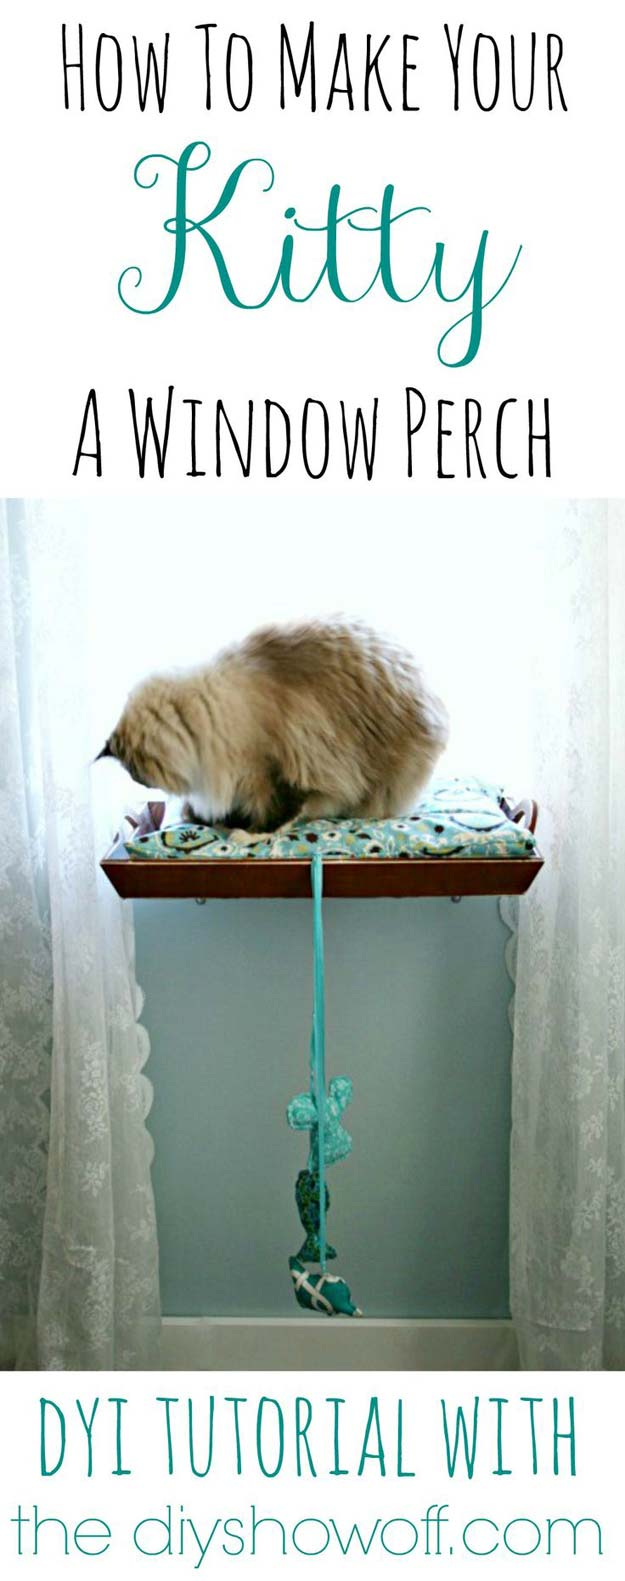 DIY Projects for Your Pet - Easy DIY Kitty Window Perch - Cat and Dog Beds, Treats, Collars and Easy Crafts to Make for Toys - Homemade Dog Biscuits, Food and Treats - Fun Ideas for Teen, Tweens and Adults to Make for Pets